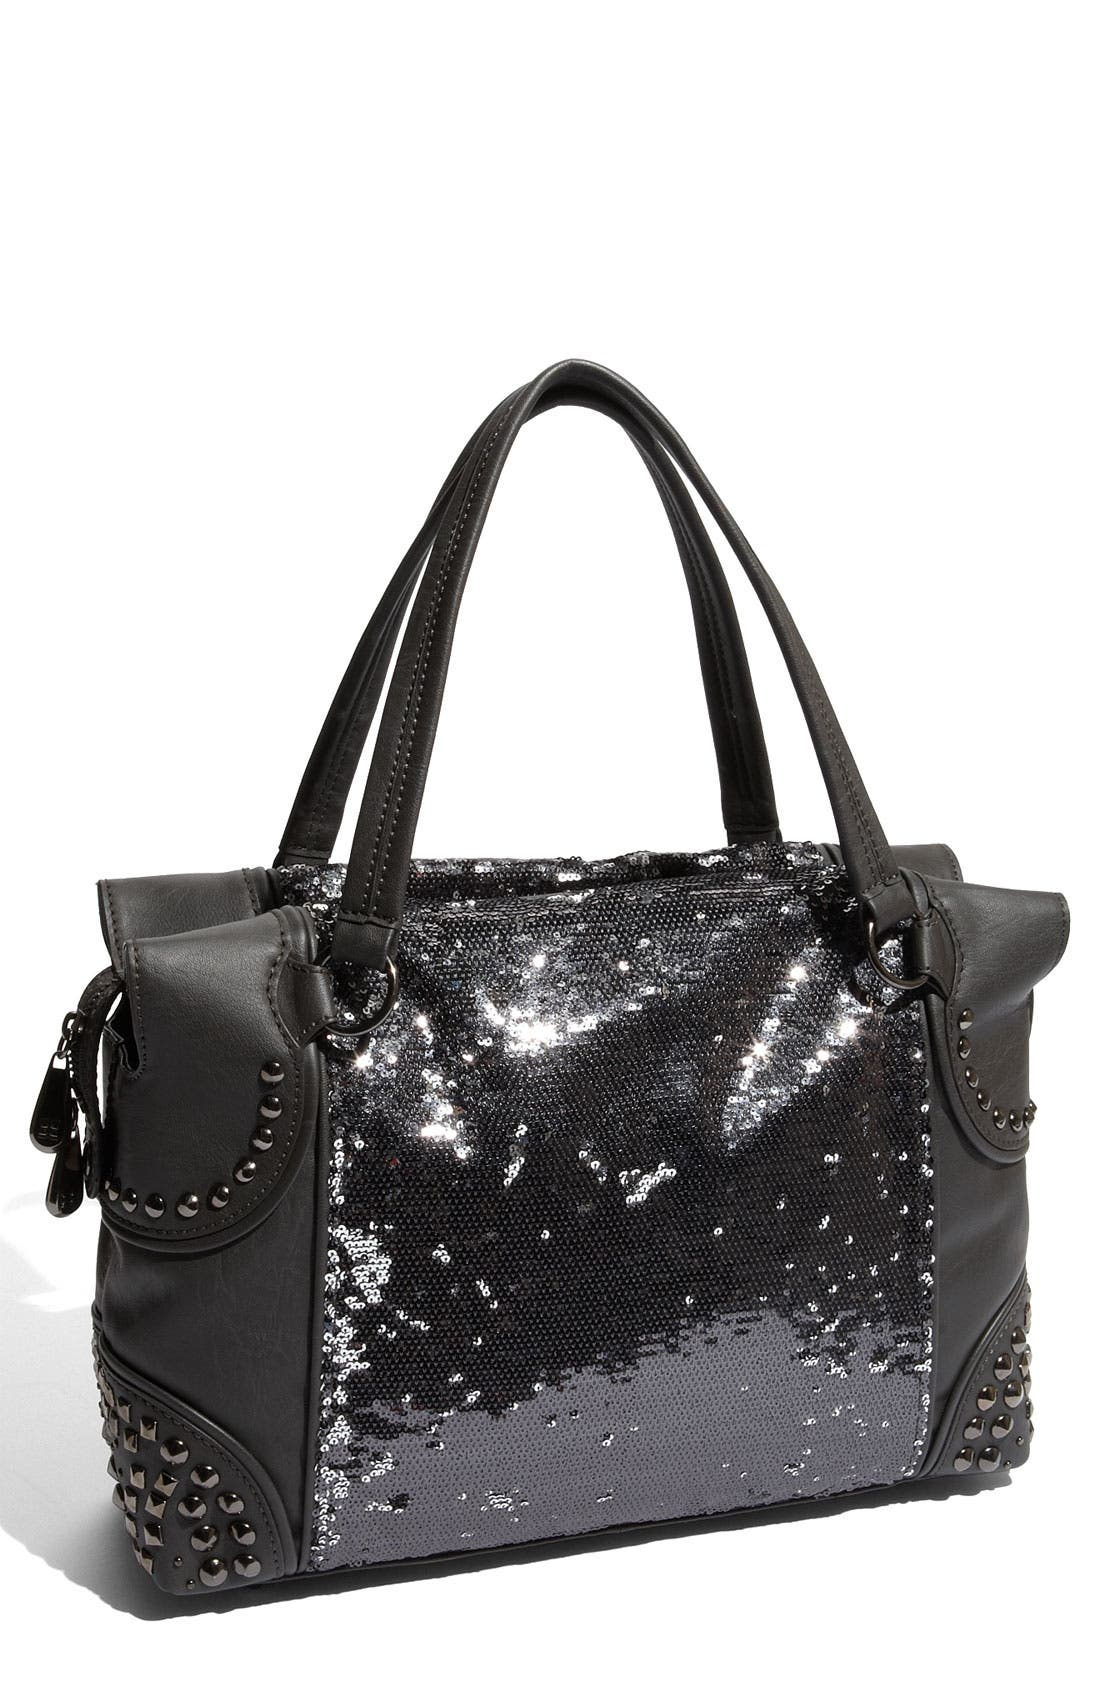 Alternate Image 1 Selected - BCBGMAXAZRIA Reversible Sequin Faux Leather Satchel